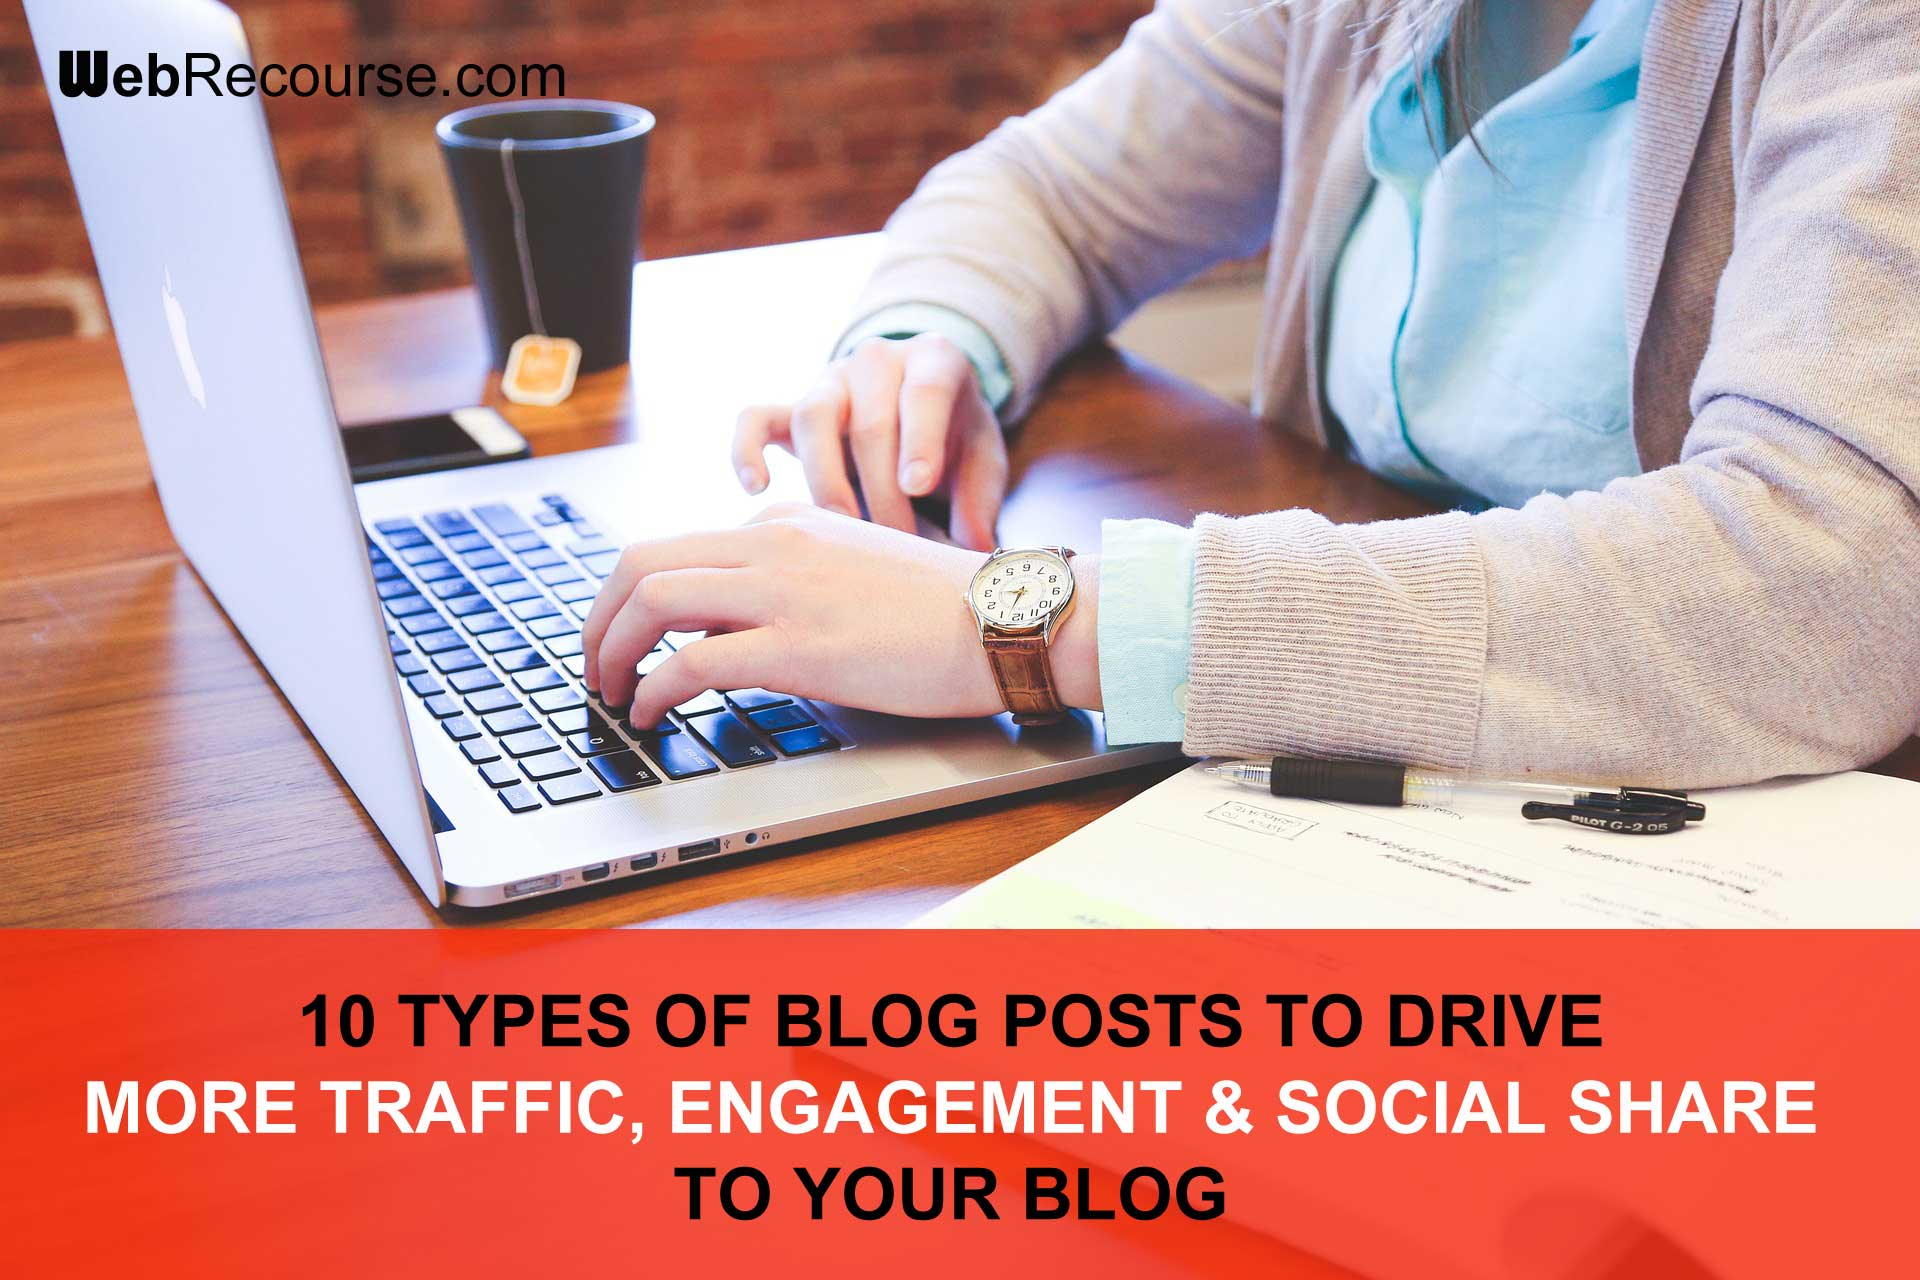 Types of Blog Posts to Drive More Traffic To Your Blog